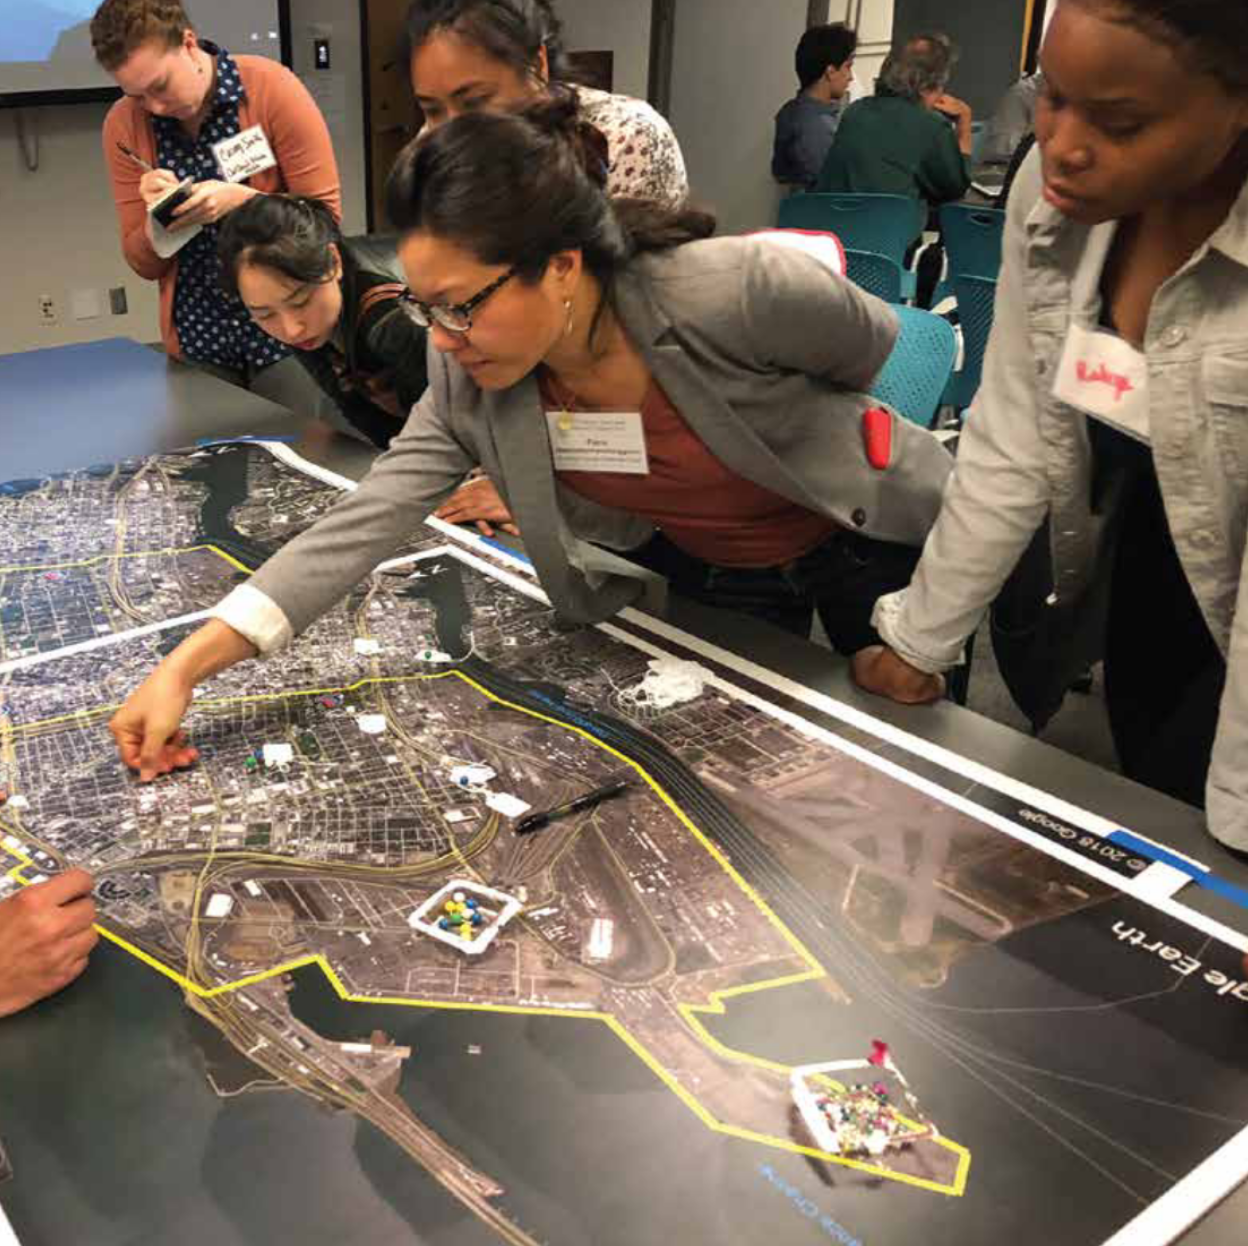 West Okland residents and air quality experts stand around a large table-top map, while a woman with dark hair and glasses points to the center of it.